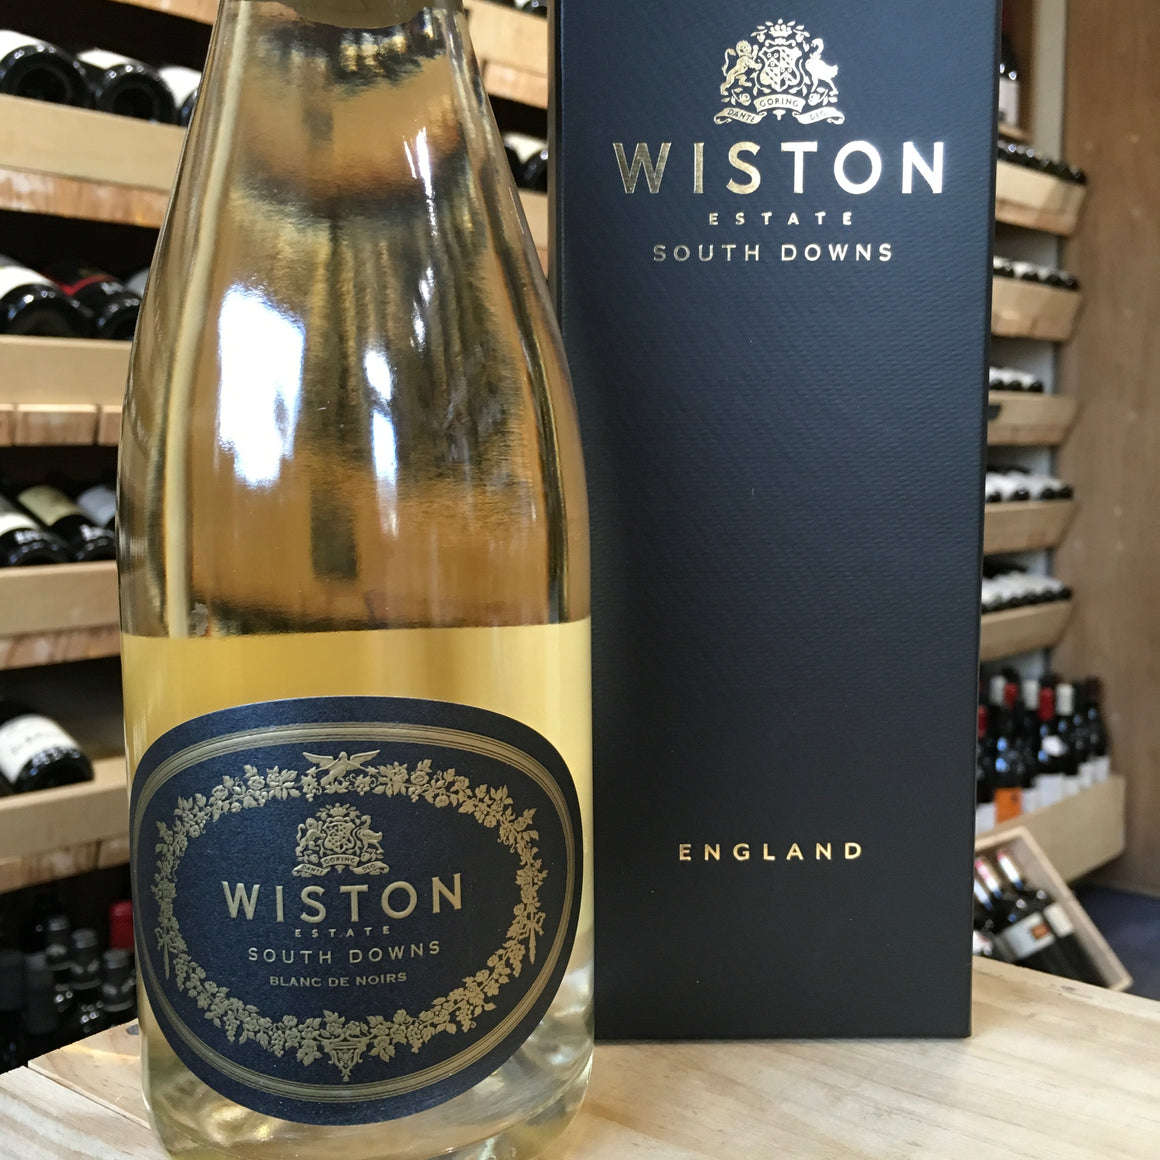 Wiston Blanc de Noirs 2010 - Butlers Wine Cellar Brighton